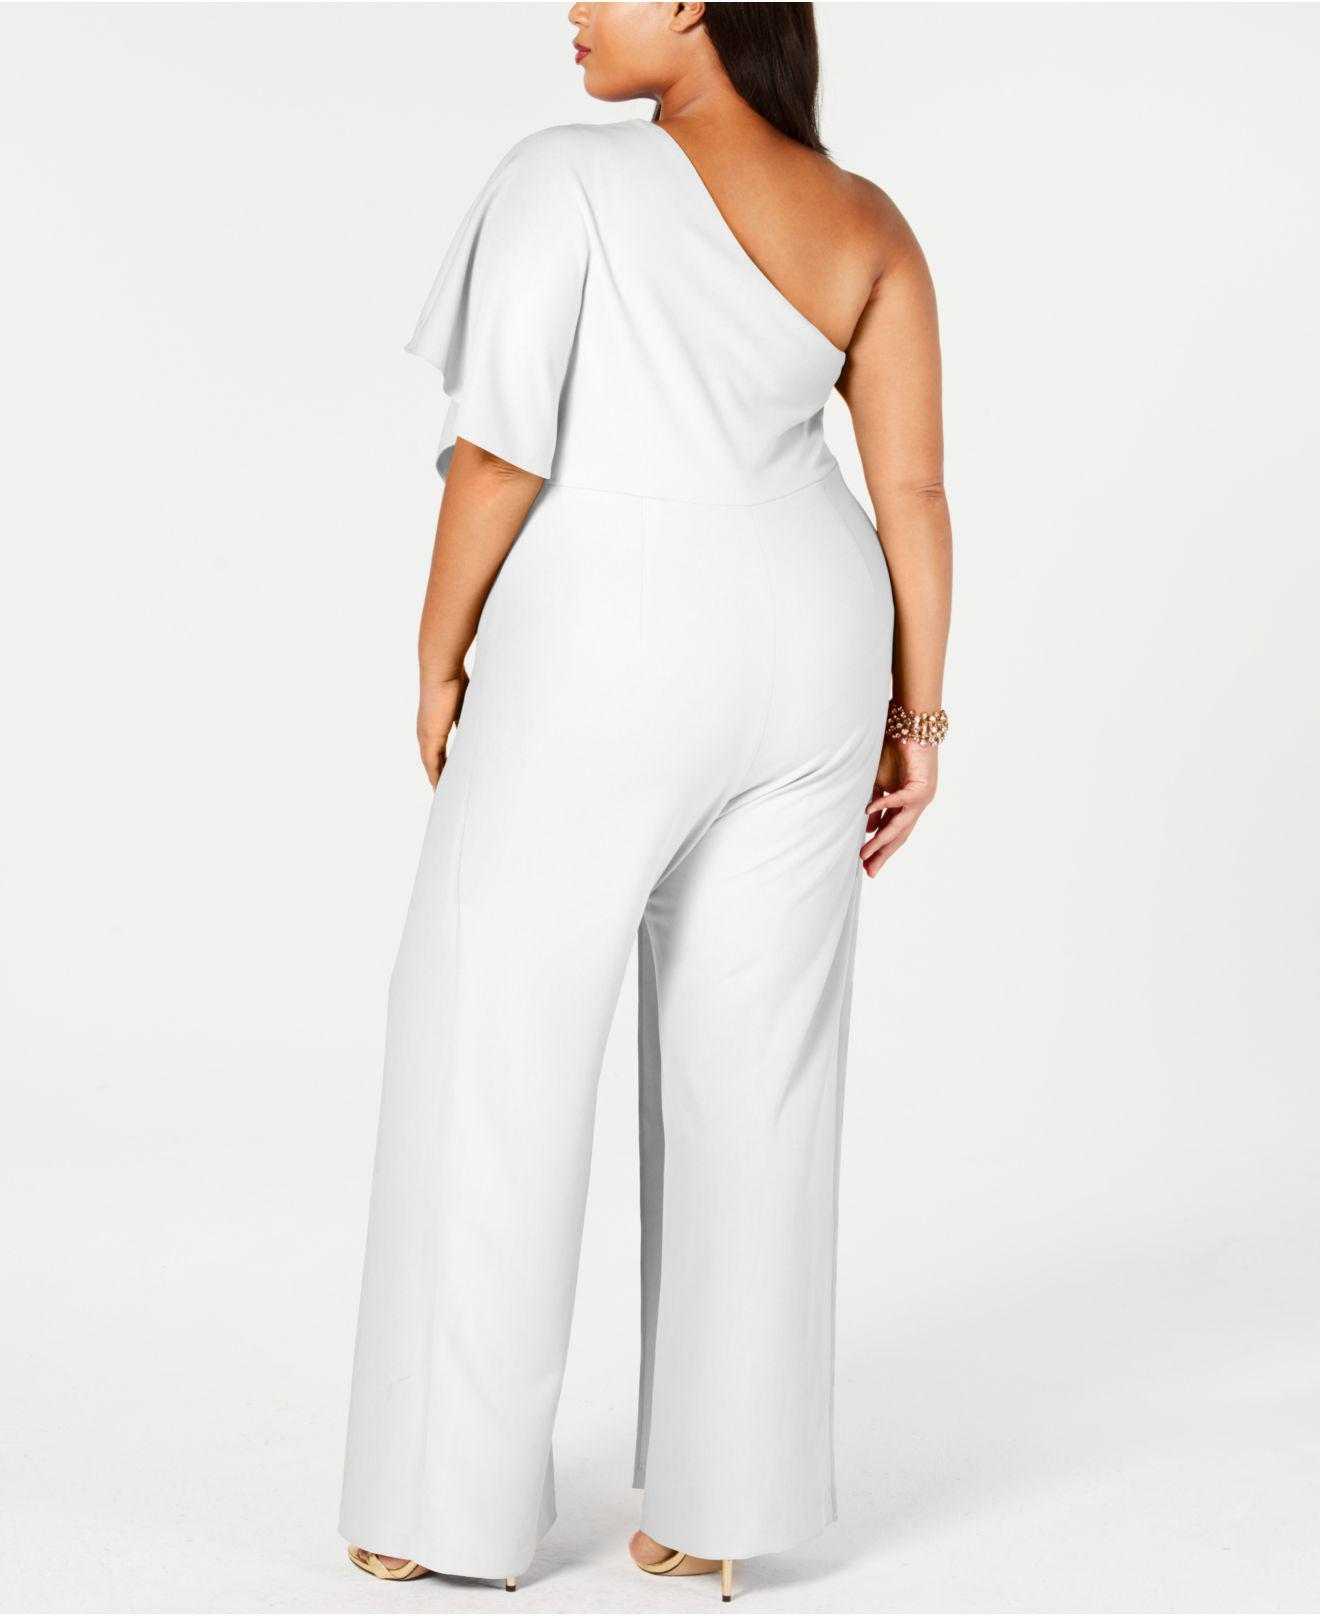 af0d04a5b41a Adrianna Papell - White Plus Size Draped One-shoulder Jumpsuit - Lyst. View  fullscreen